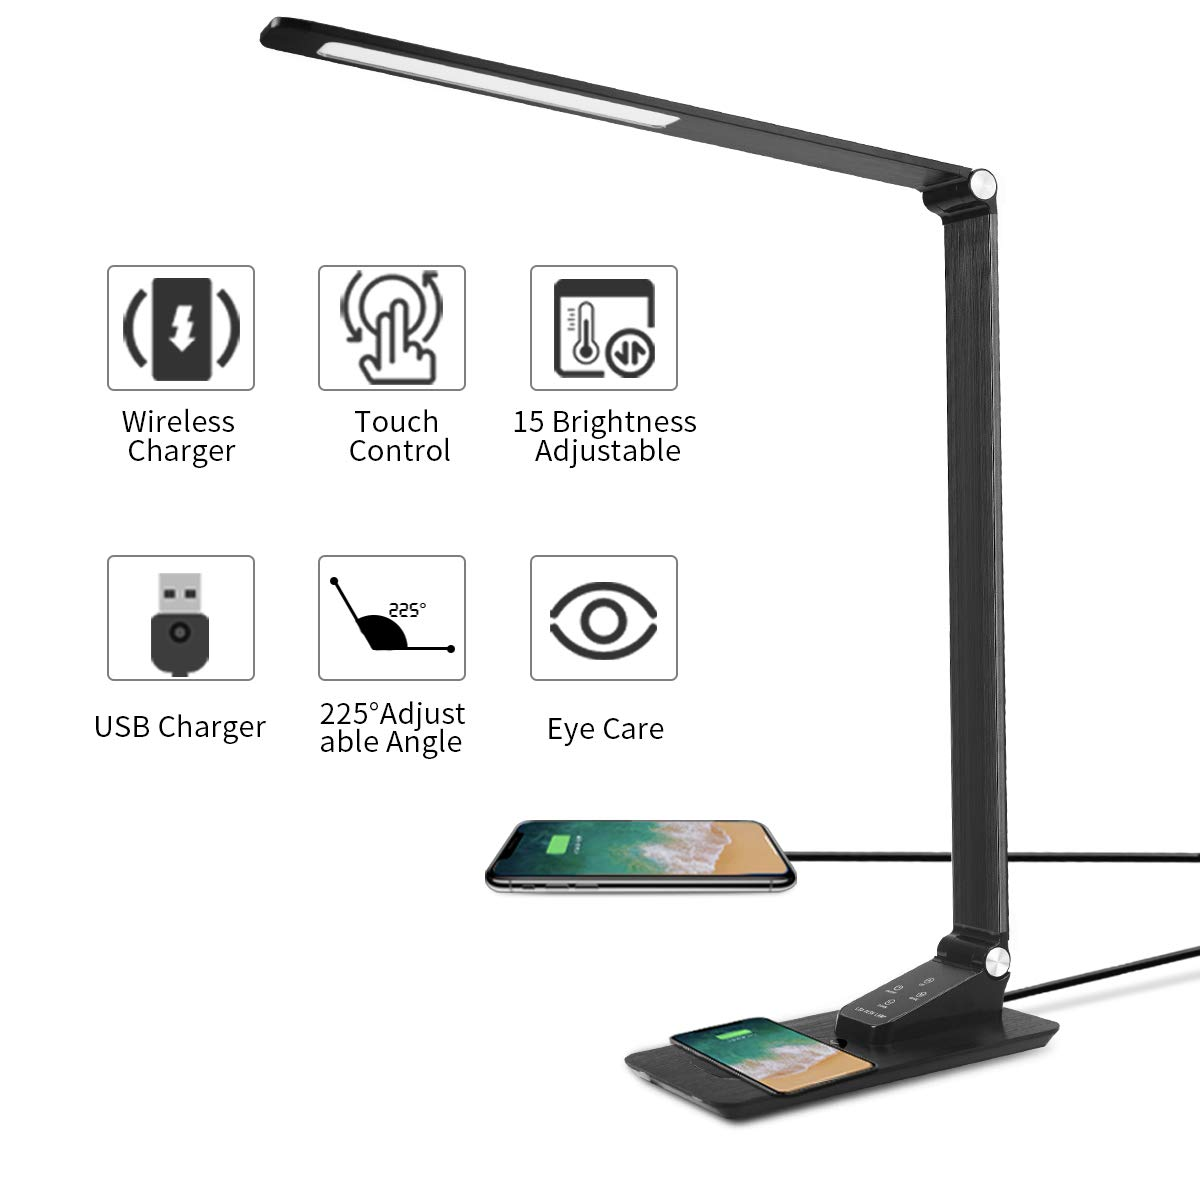 Led Desk Lamp Wireless Charging,Eye-caring Foldable Table Lamp,Dimmable Metal Office Lamp with USB Port,QI,Touch Control,Memory Function for Reading, Studying, Working,Living Room,Bedroom